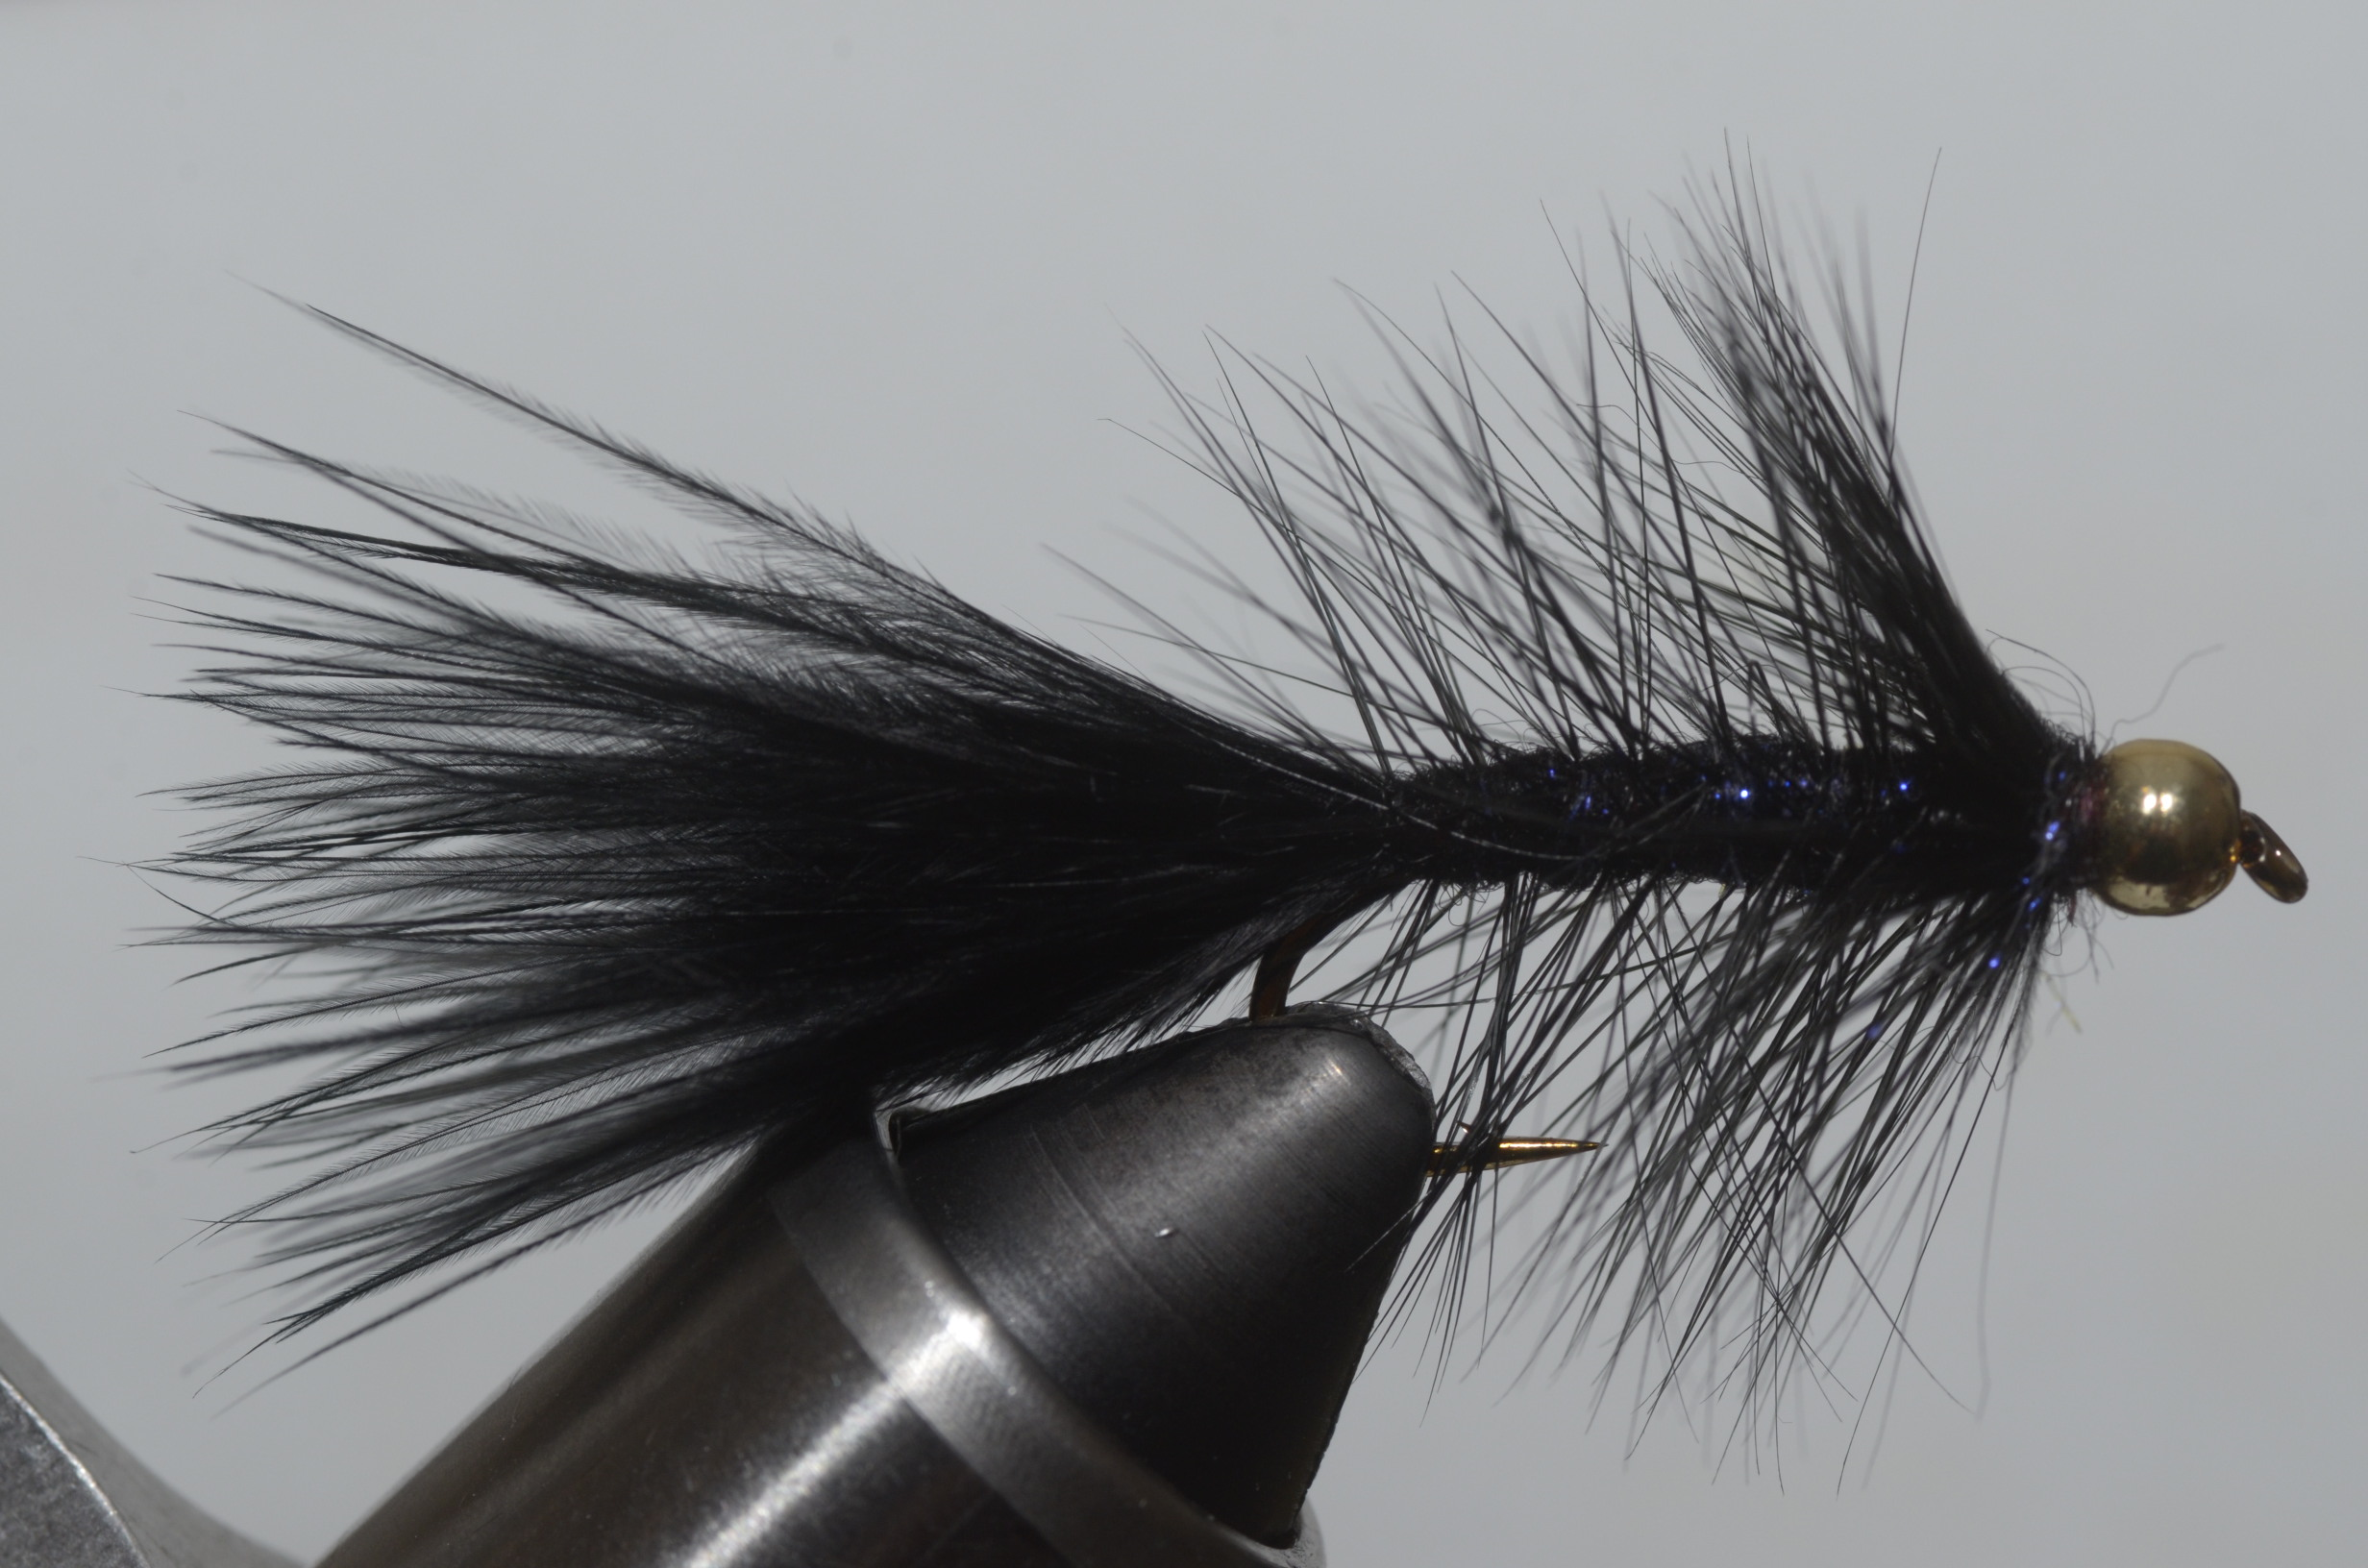 how to fish a wooly bugger on a fly rod